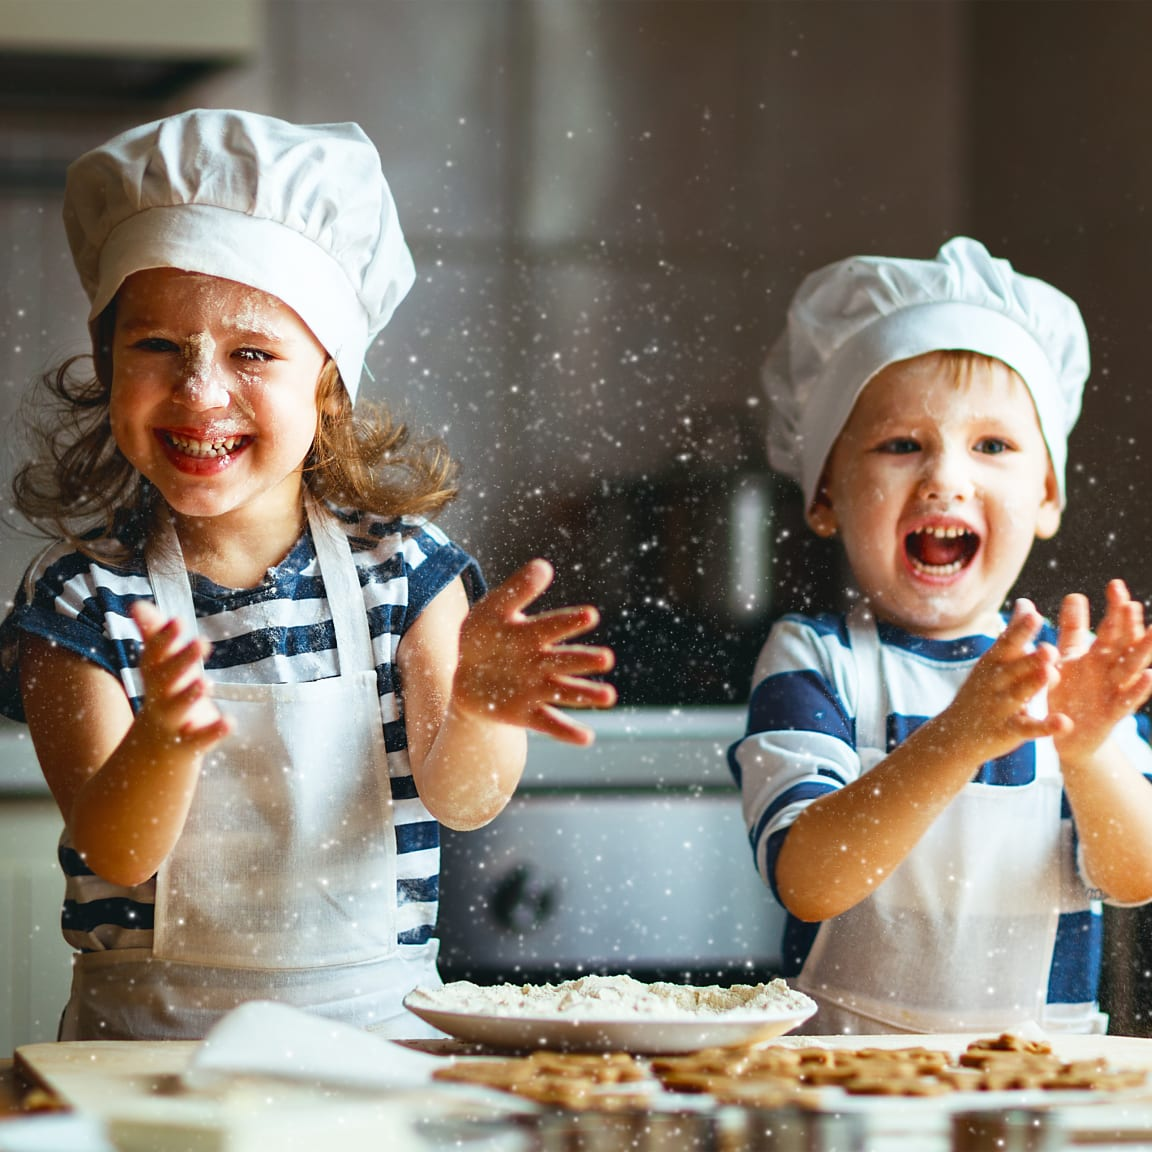 Kids in the kitchen: These healthy baked treats won't disappoint